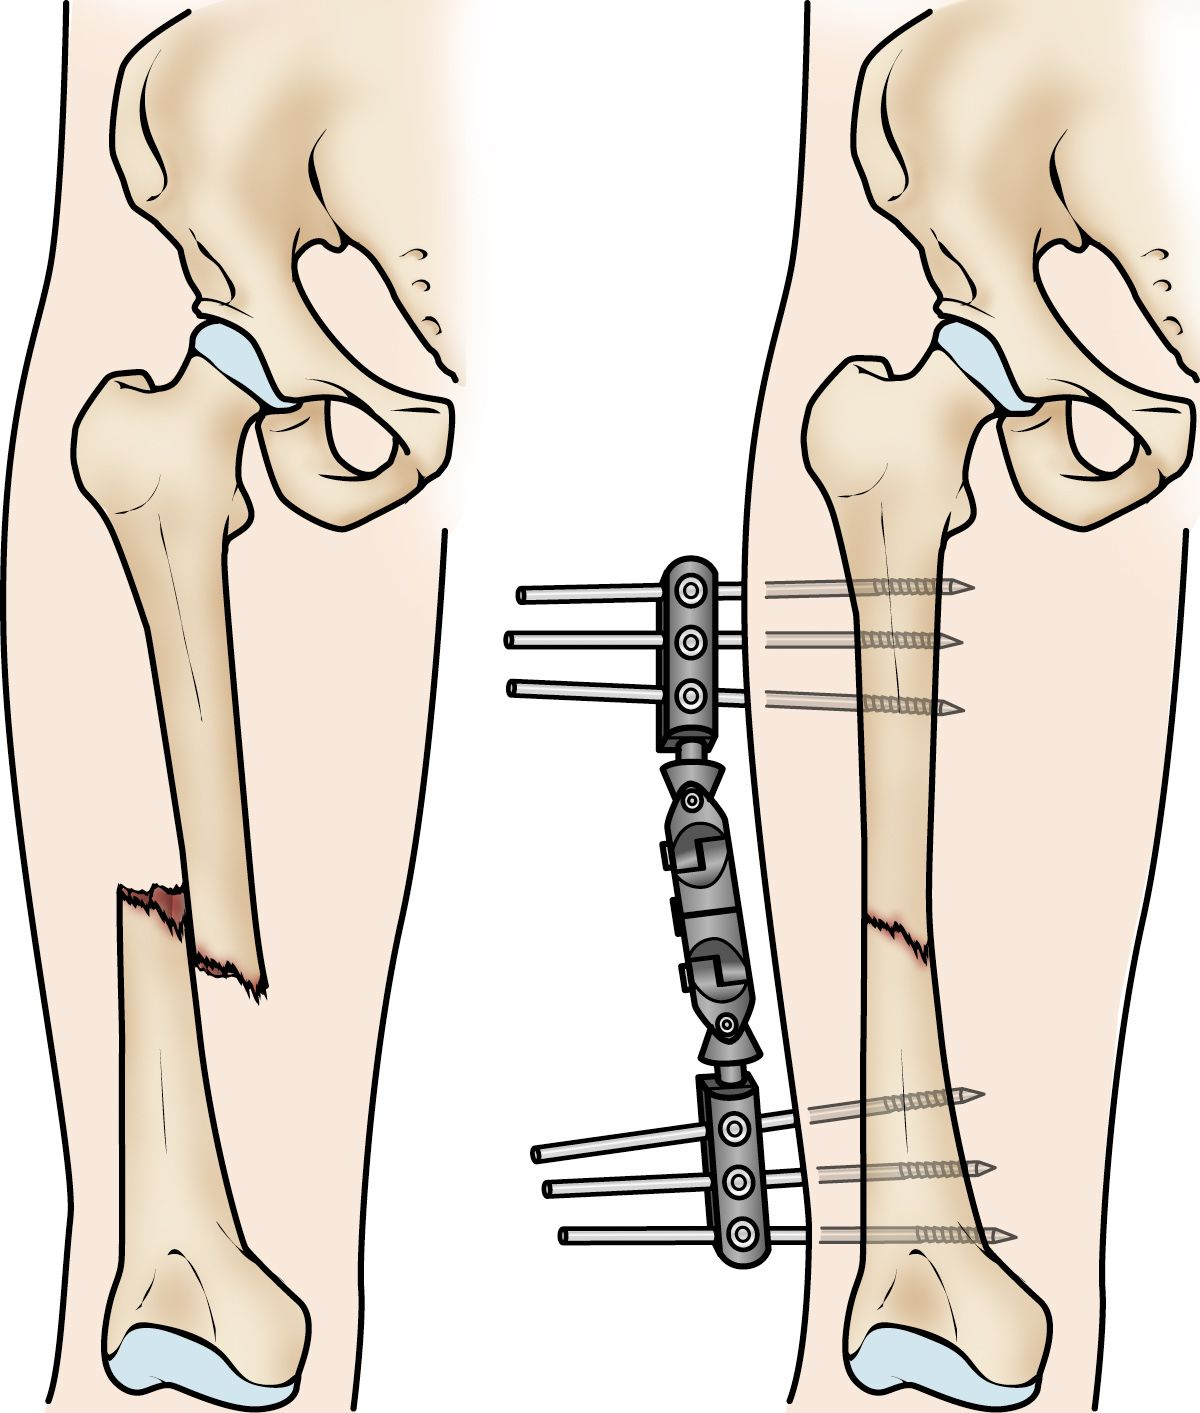 External fixation of a femoral shaft fracture